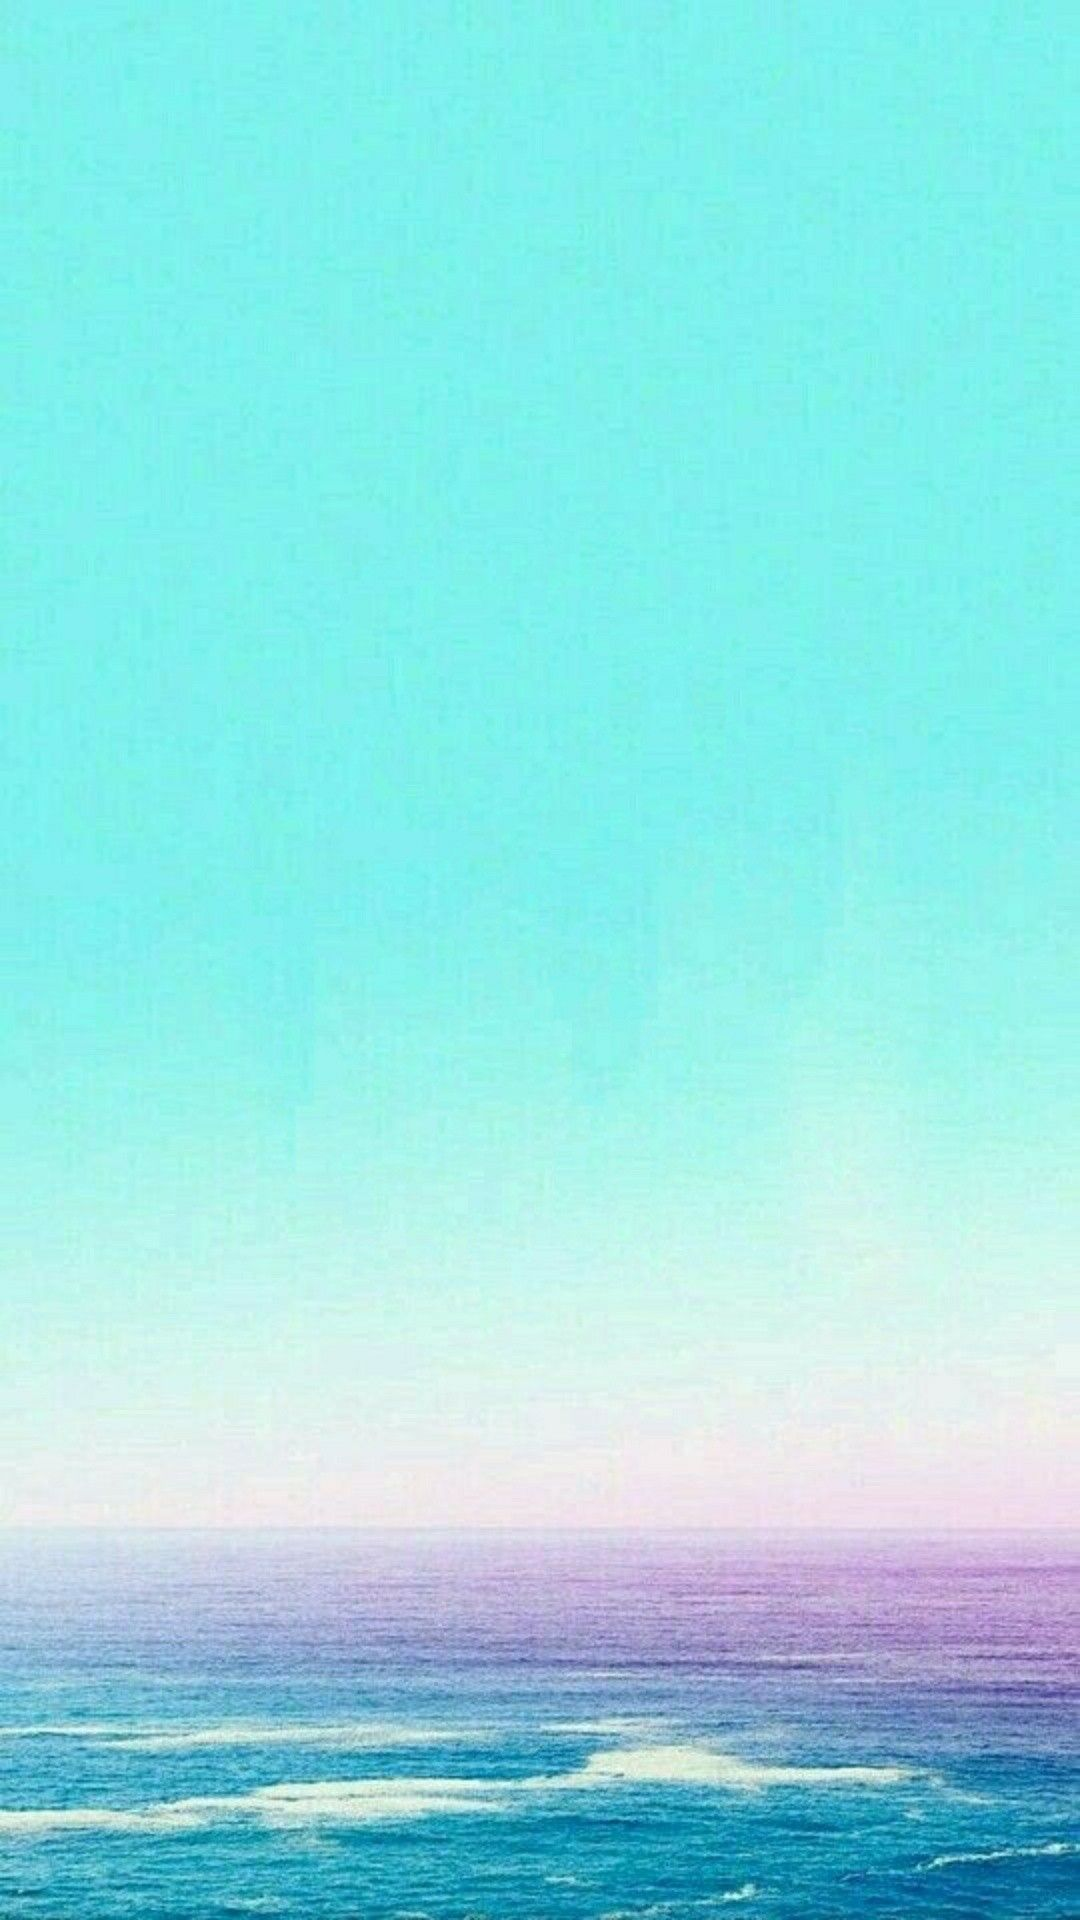 Minimal Iphone Iphonewallpaper Wallpaper Purple Cute Disney Blue Babyblie Skyblue Purple B Bright Wallpaper Wallpaper Iphone Summer Summer Wallpaper